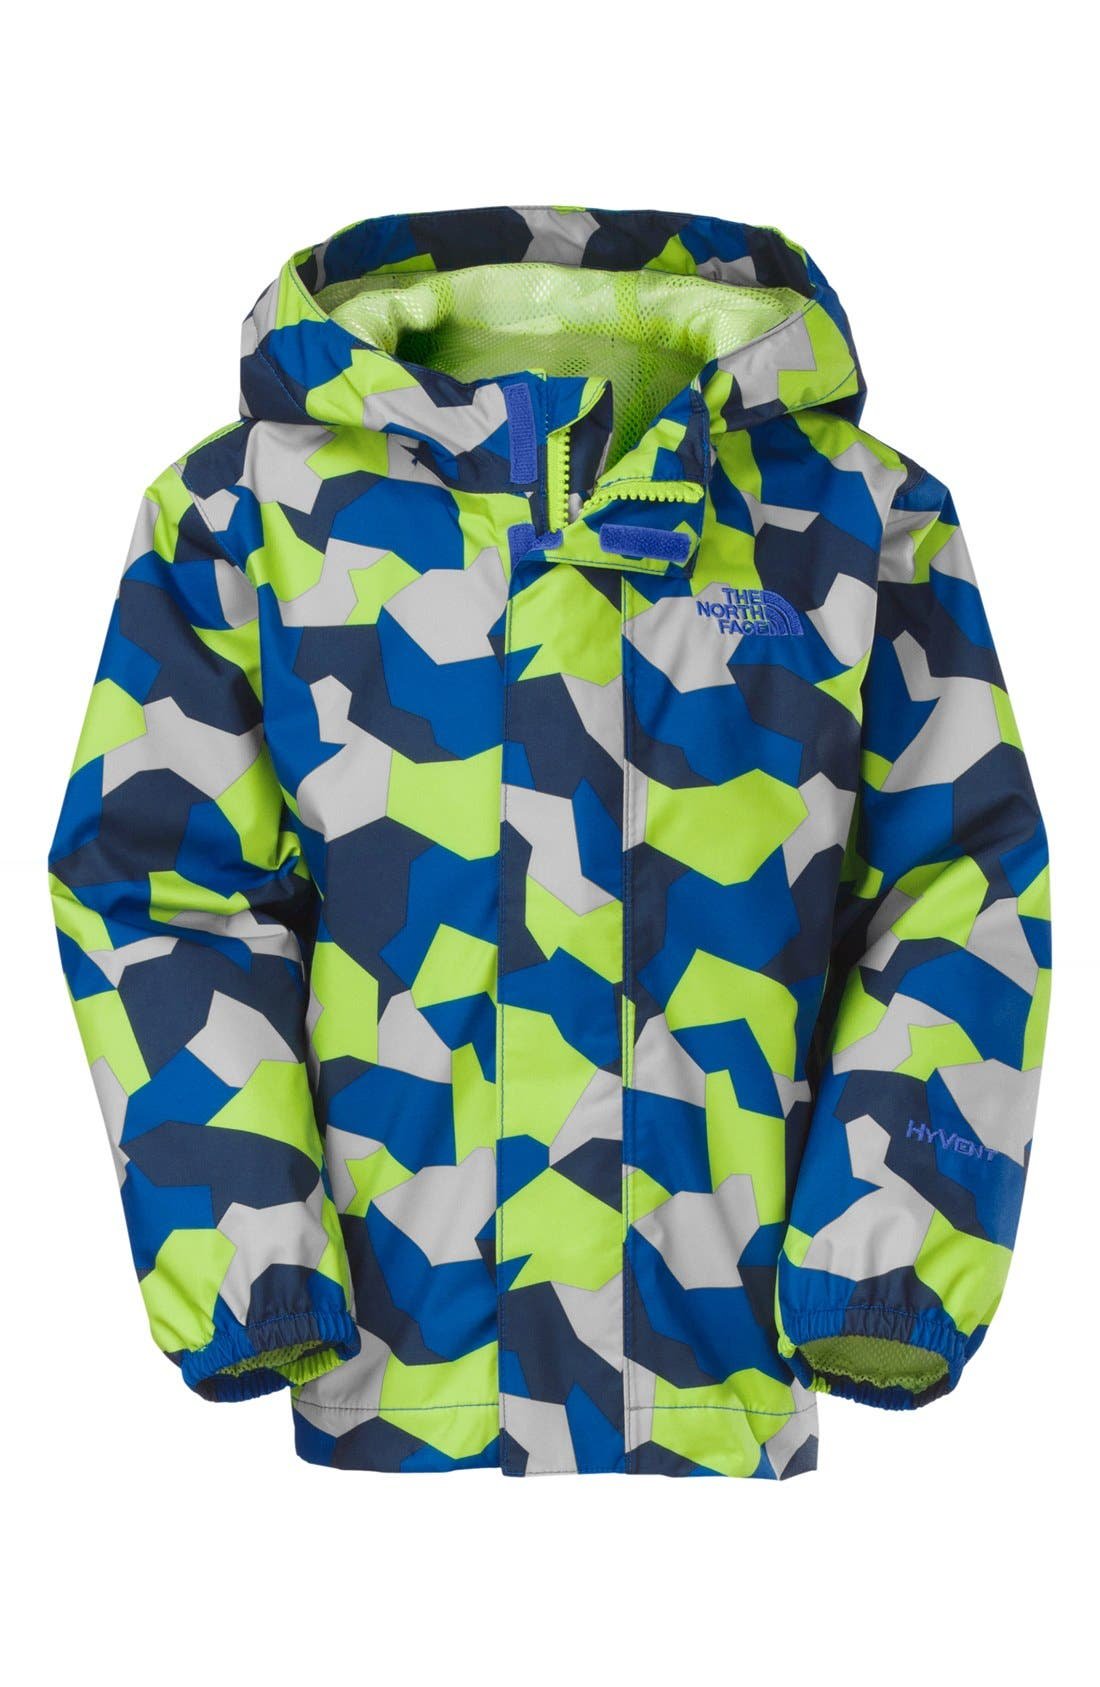 Main Image - The North Face 'Campcam' Hooded Rain Jacket (Toddler Boys)